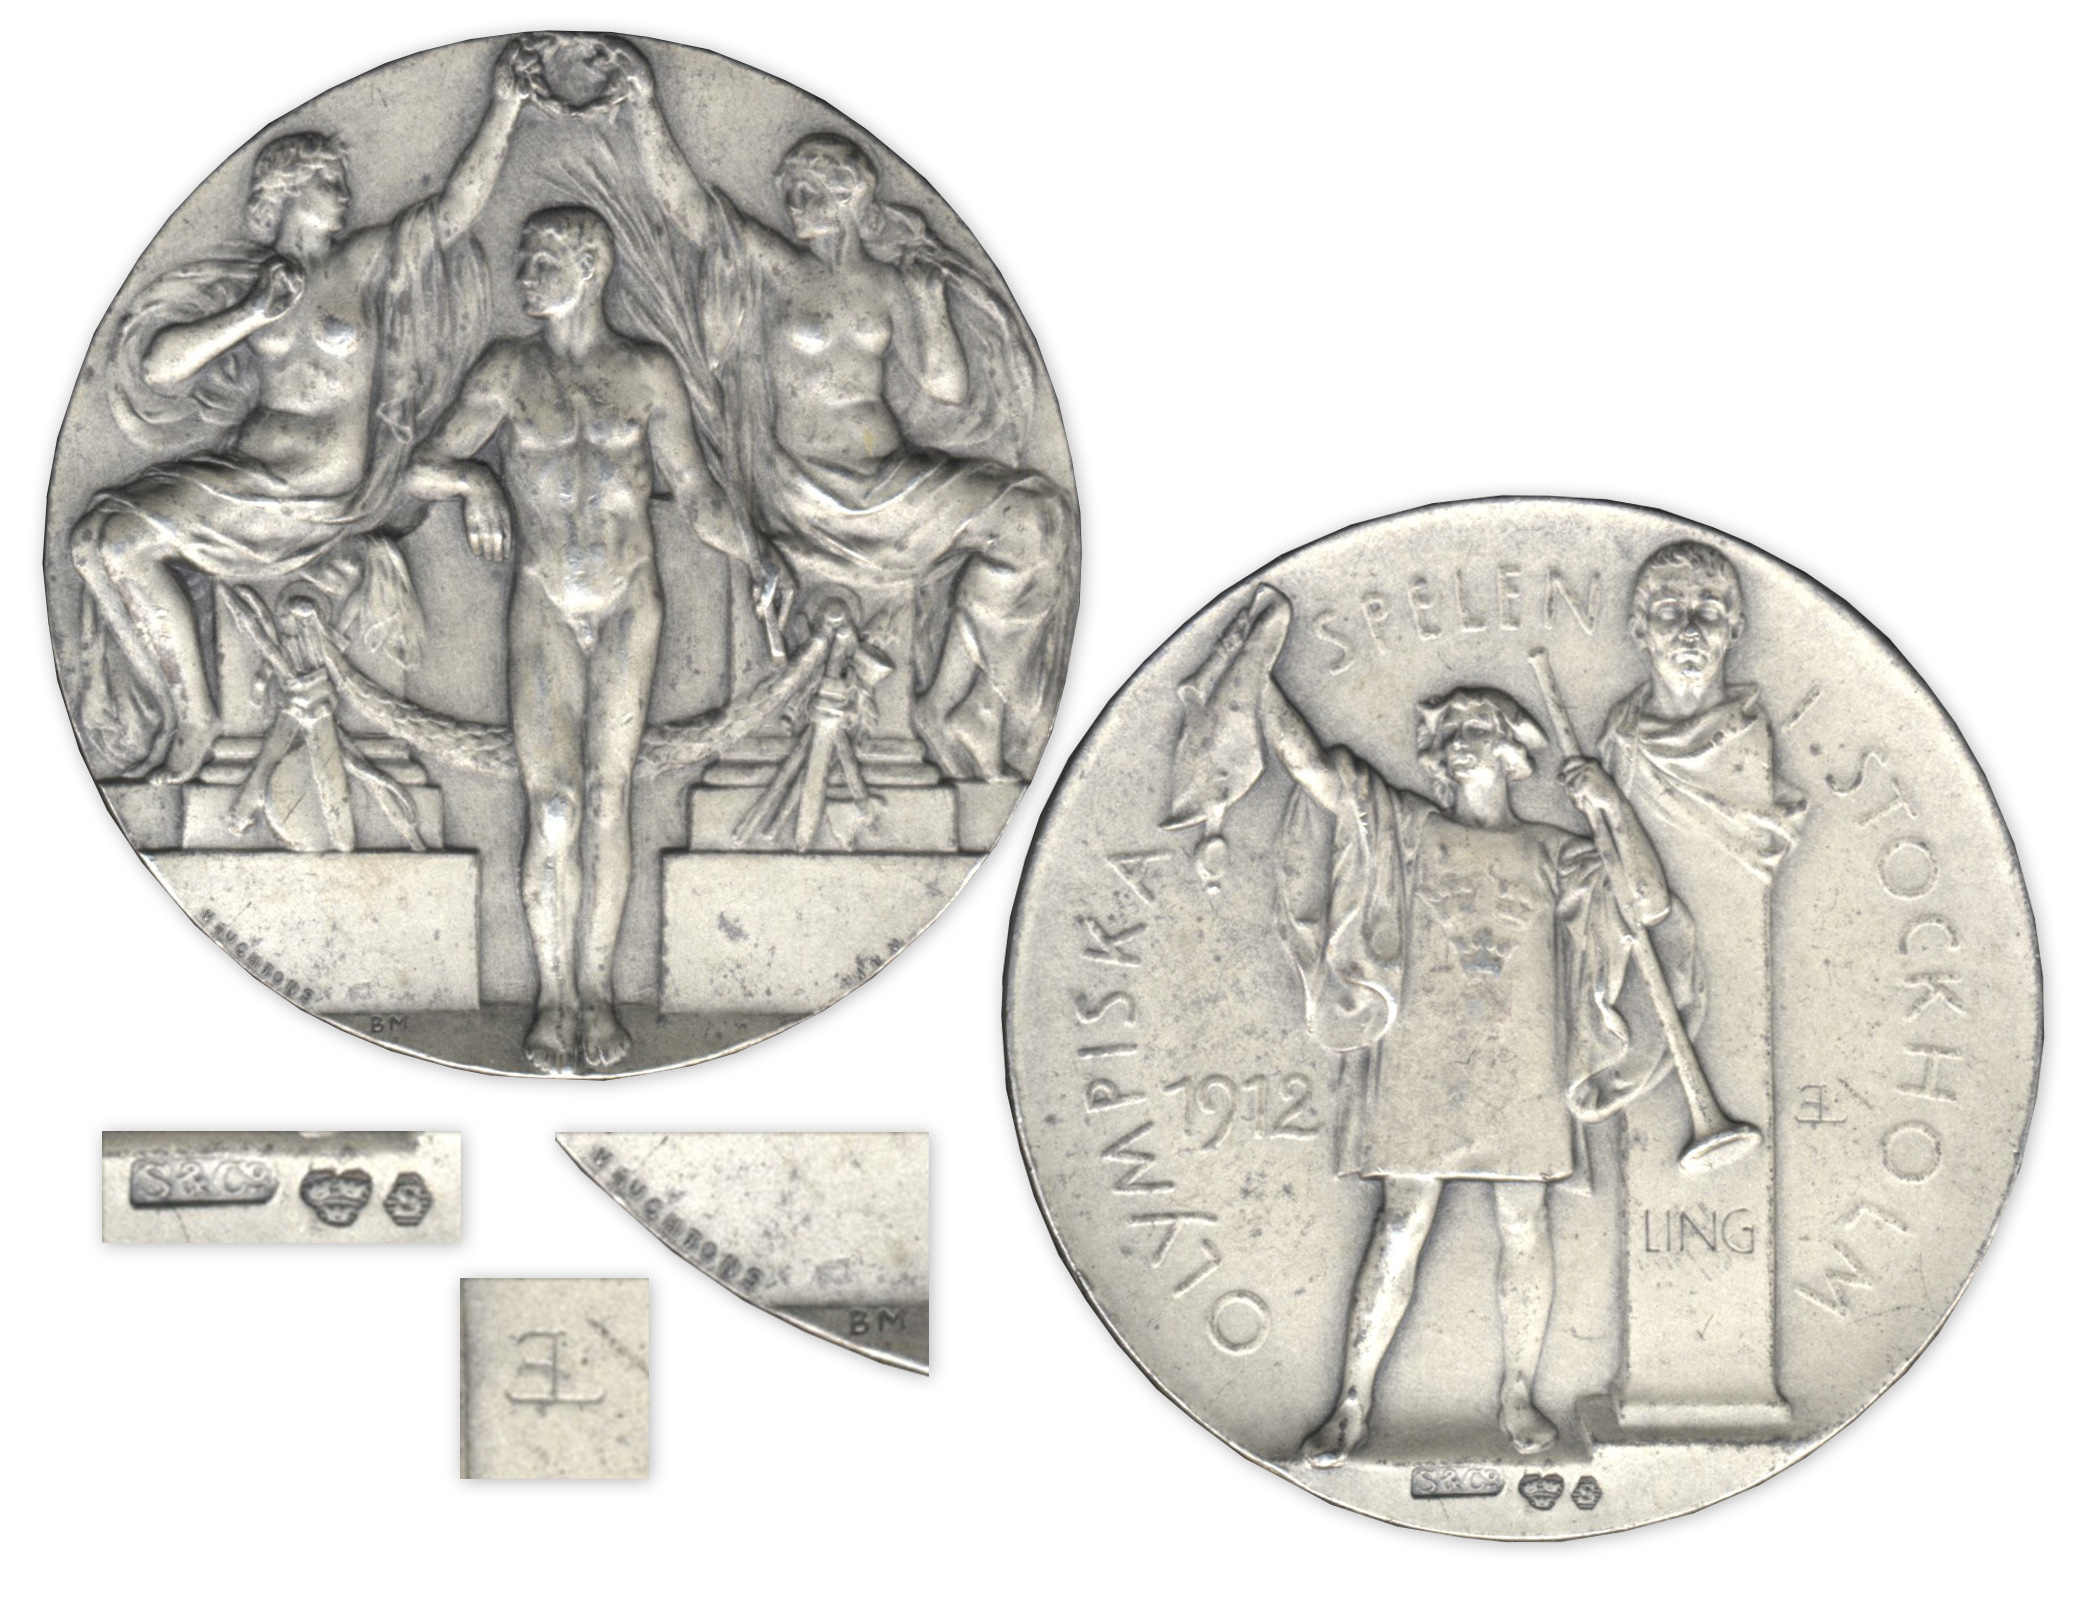 Silver Medal From the 1912 Summer Olympics, Held in Stockholm, SwedenAll > Olympics